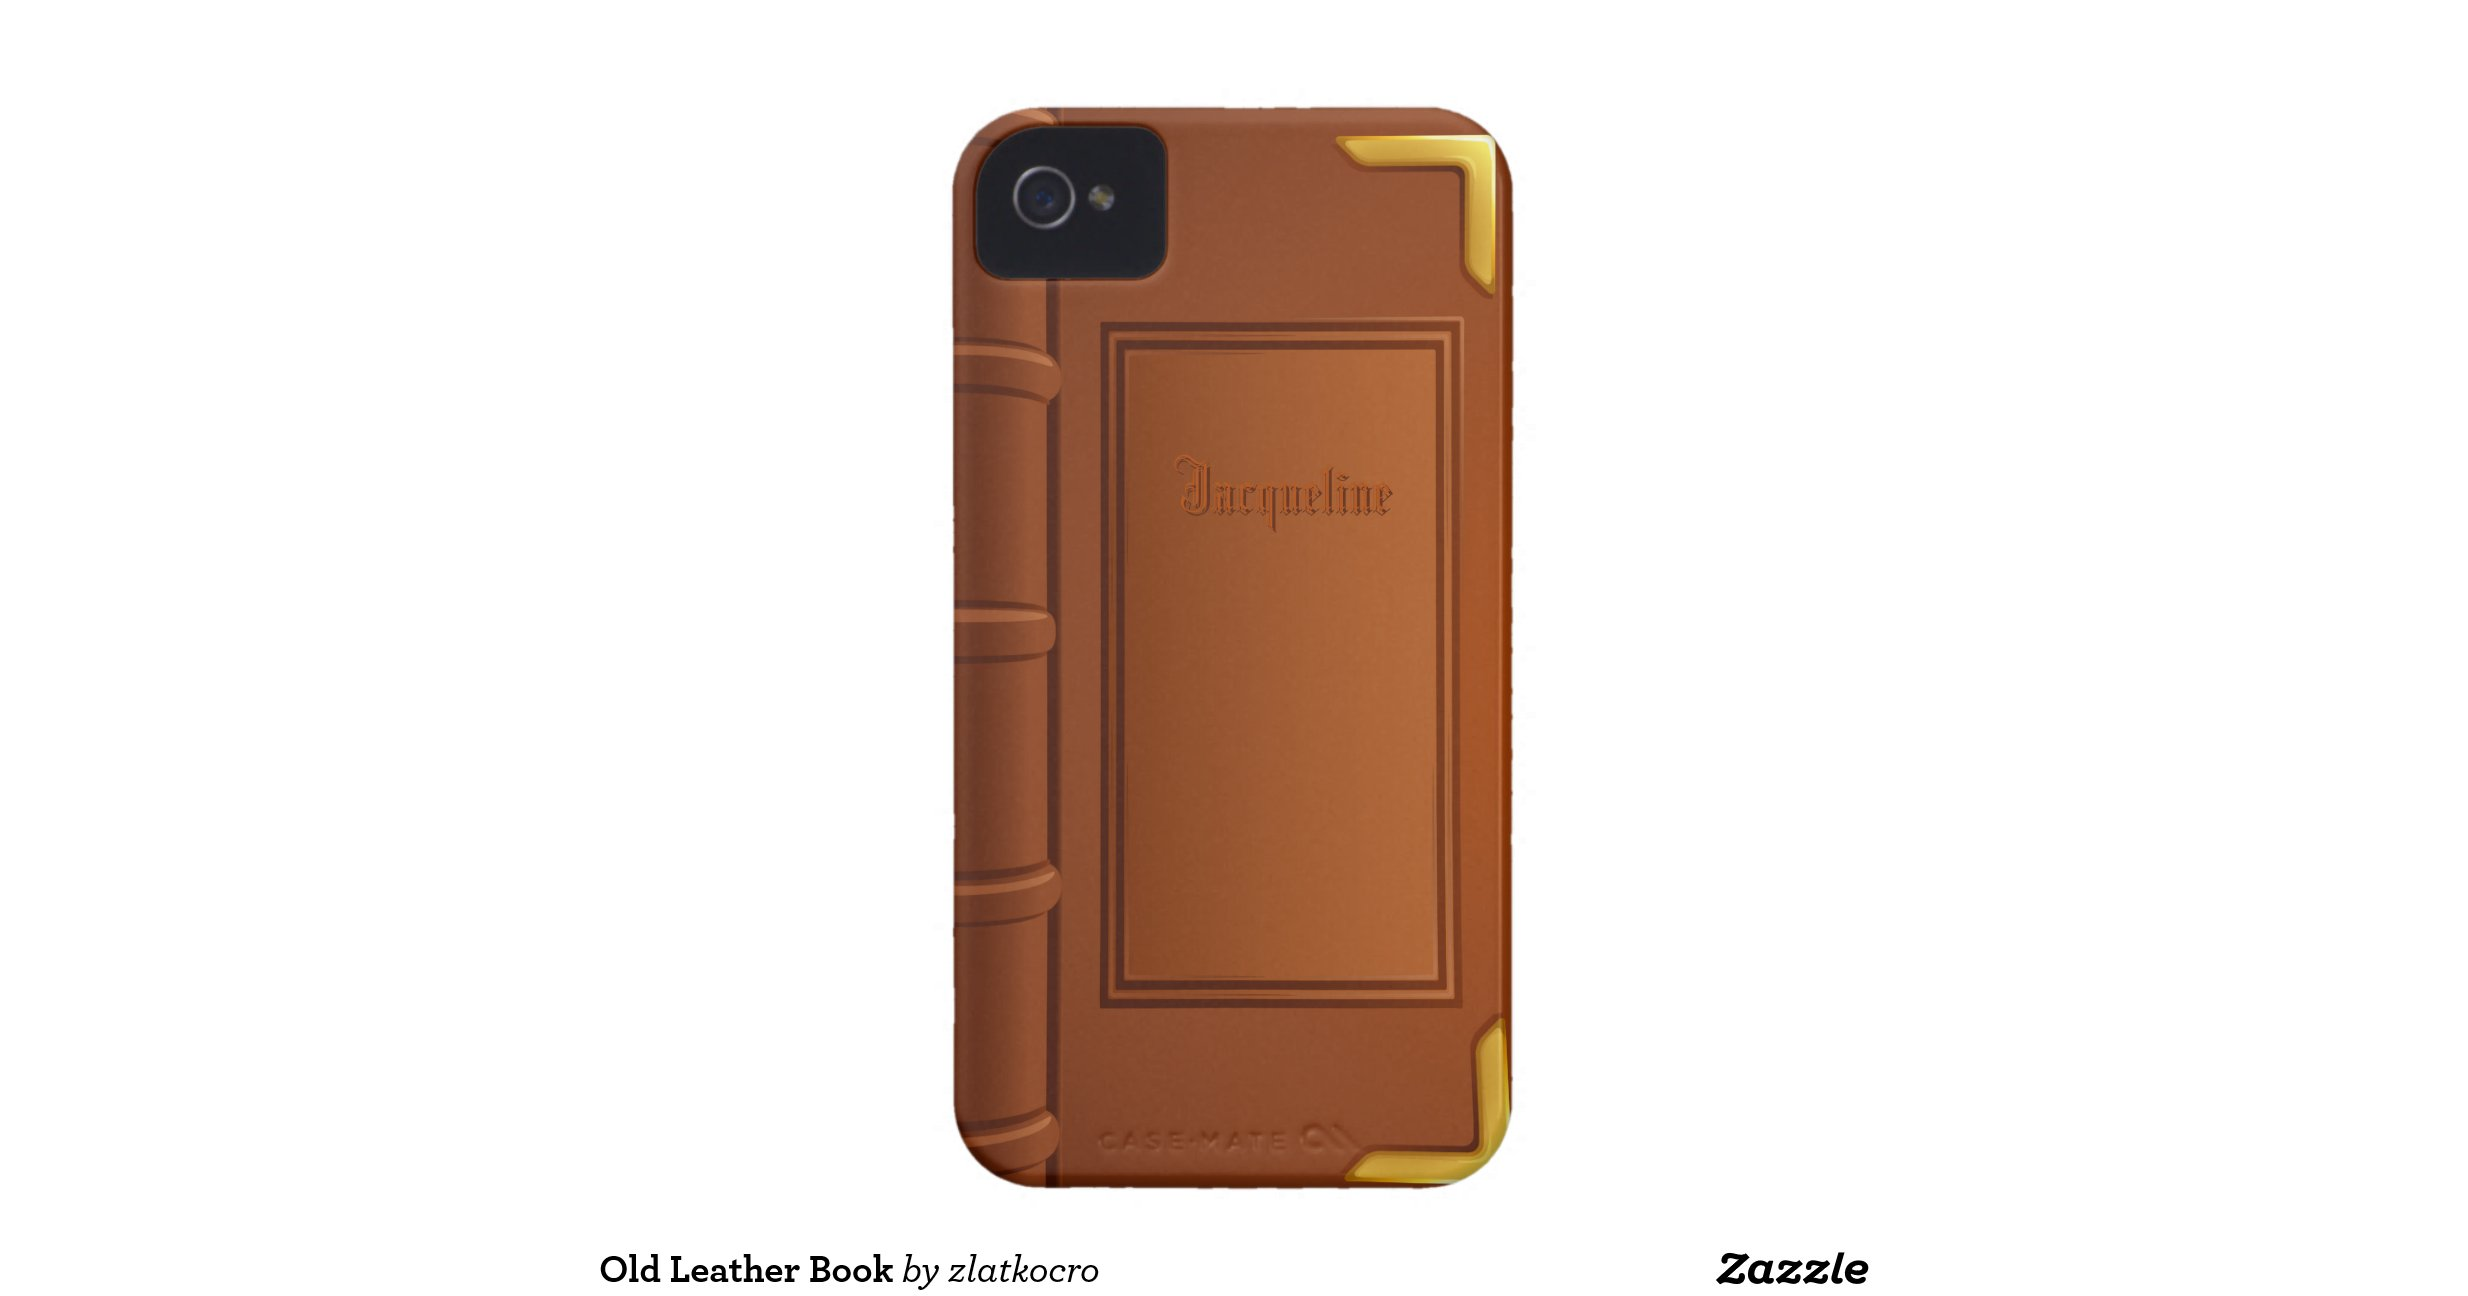 Old Book Cover Iphone : Old leather book iphone covers zazzle